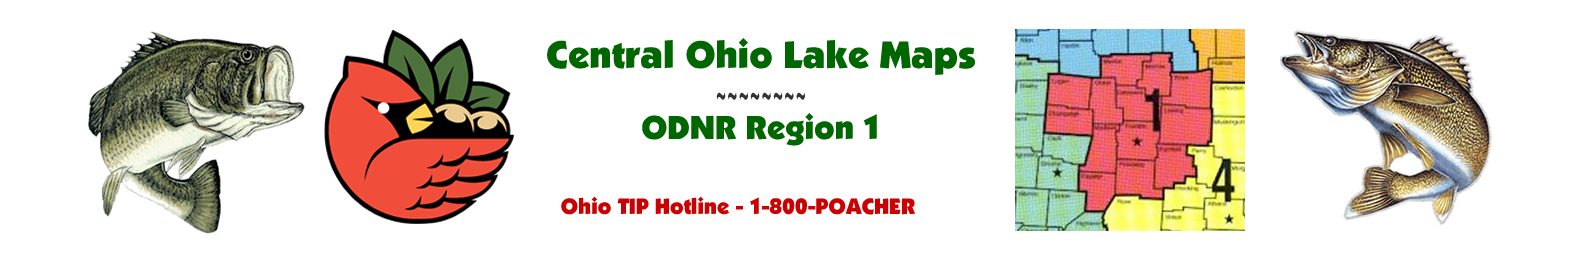 Central Ohio Fishing Maps - ODNR Region One